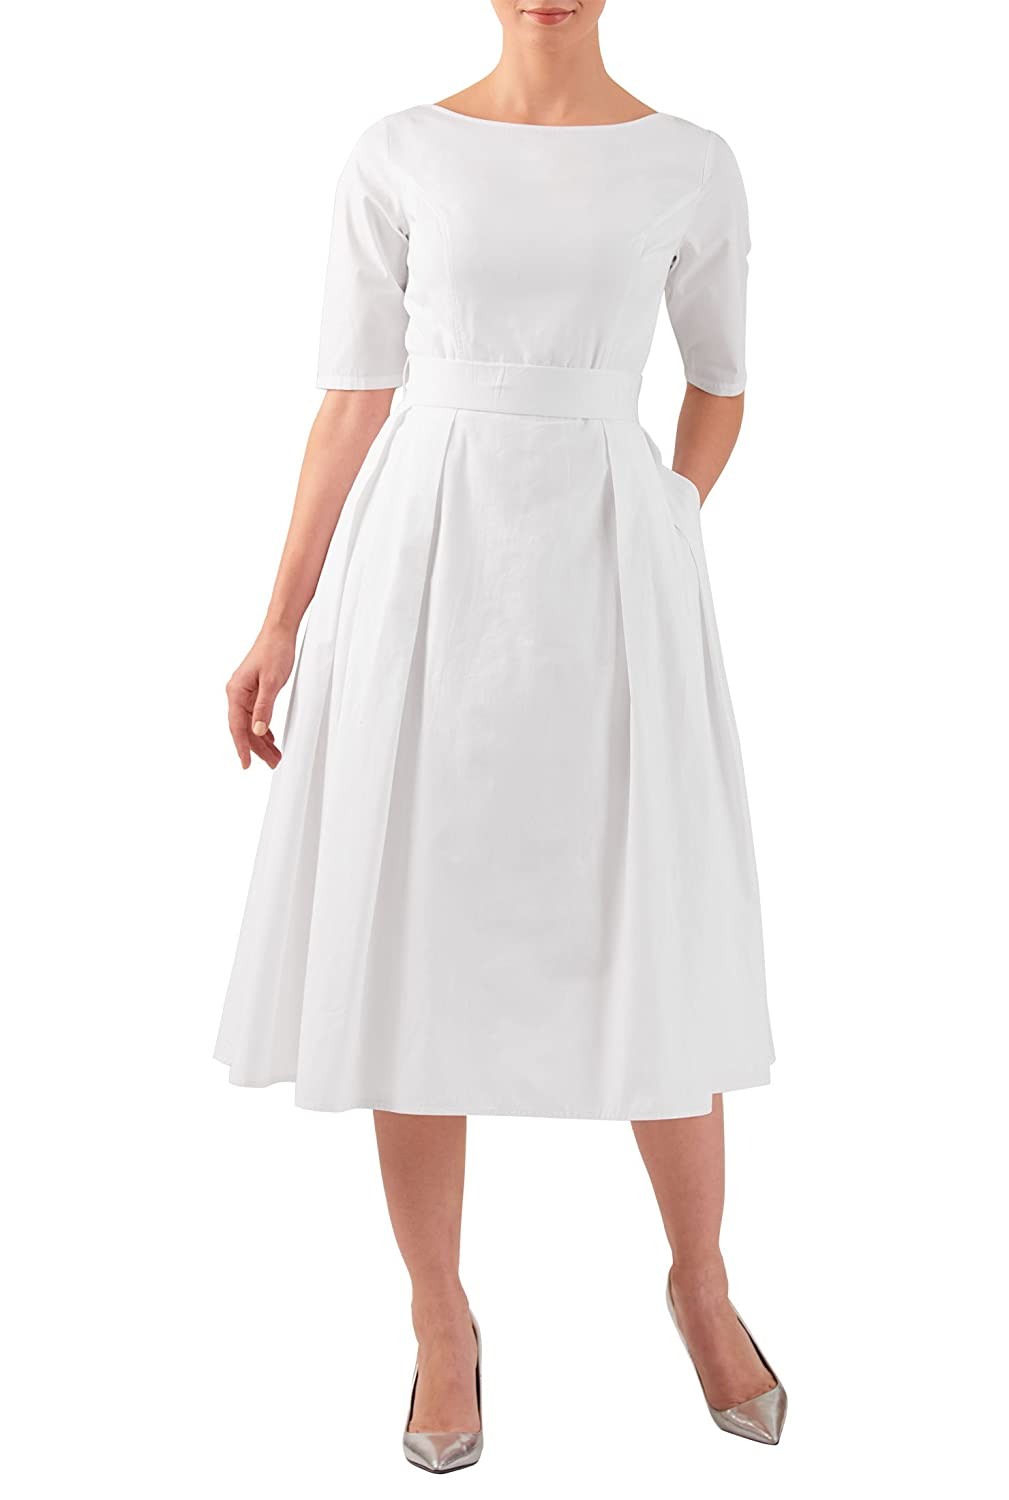 60s Wedding Dress | 1960s Style Wedding Dresses eShakti Womens Quincy dress $49.95 AT vintagedancer.com